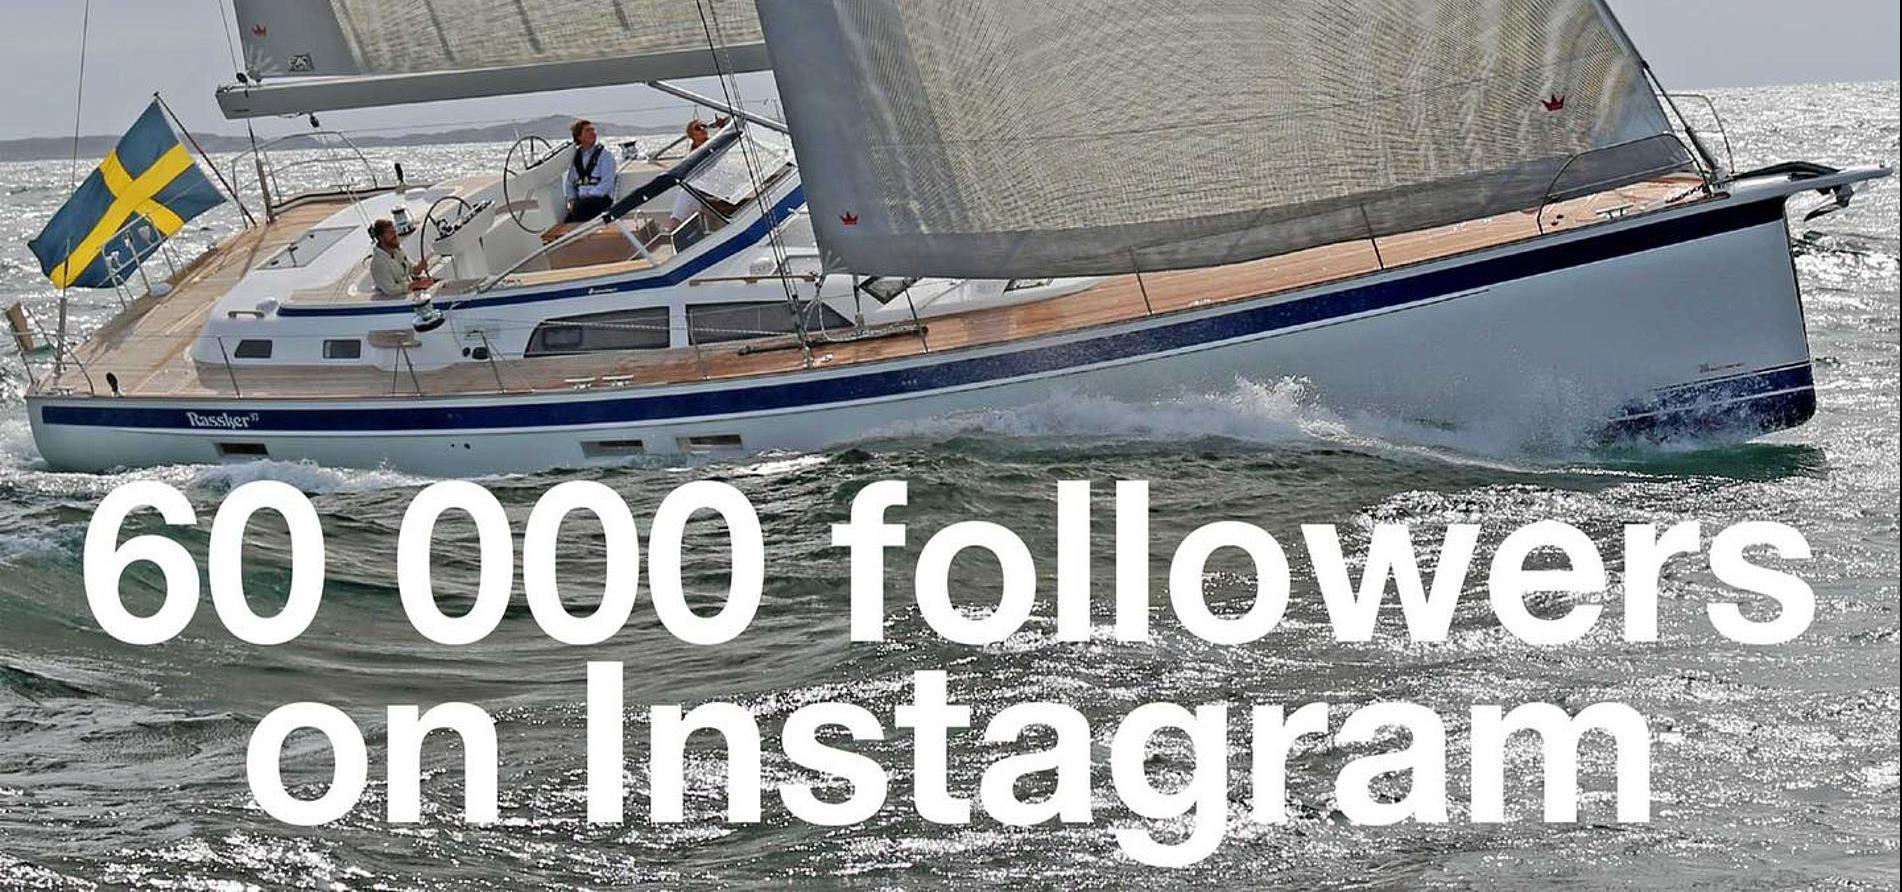 Hallberg-Rassy now has over 62 000 followers on Instagram